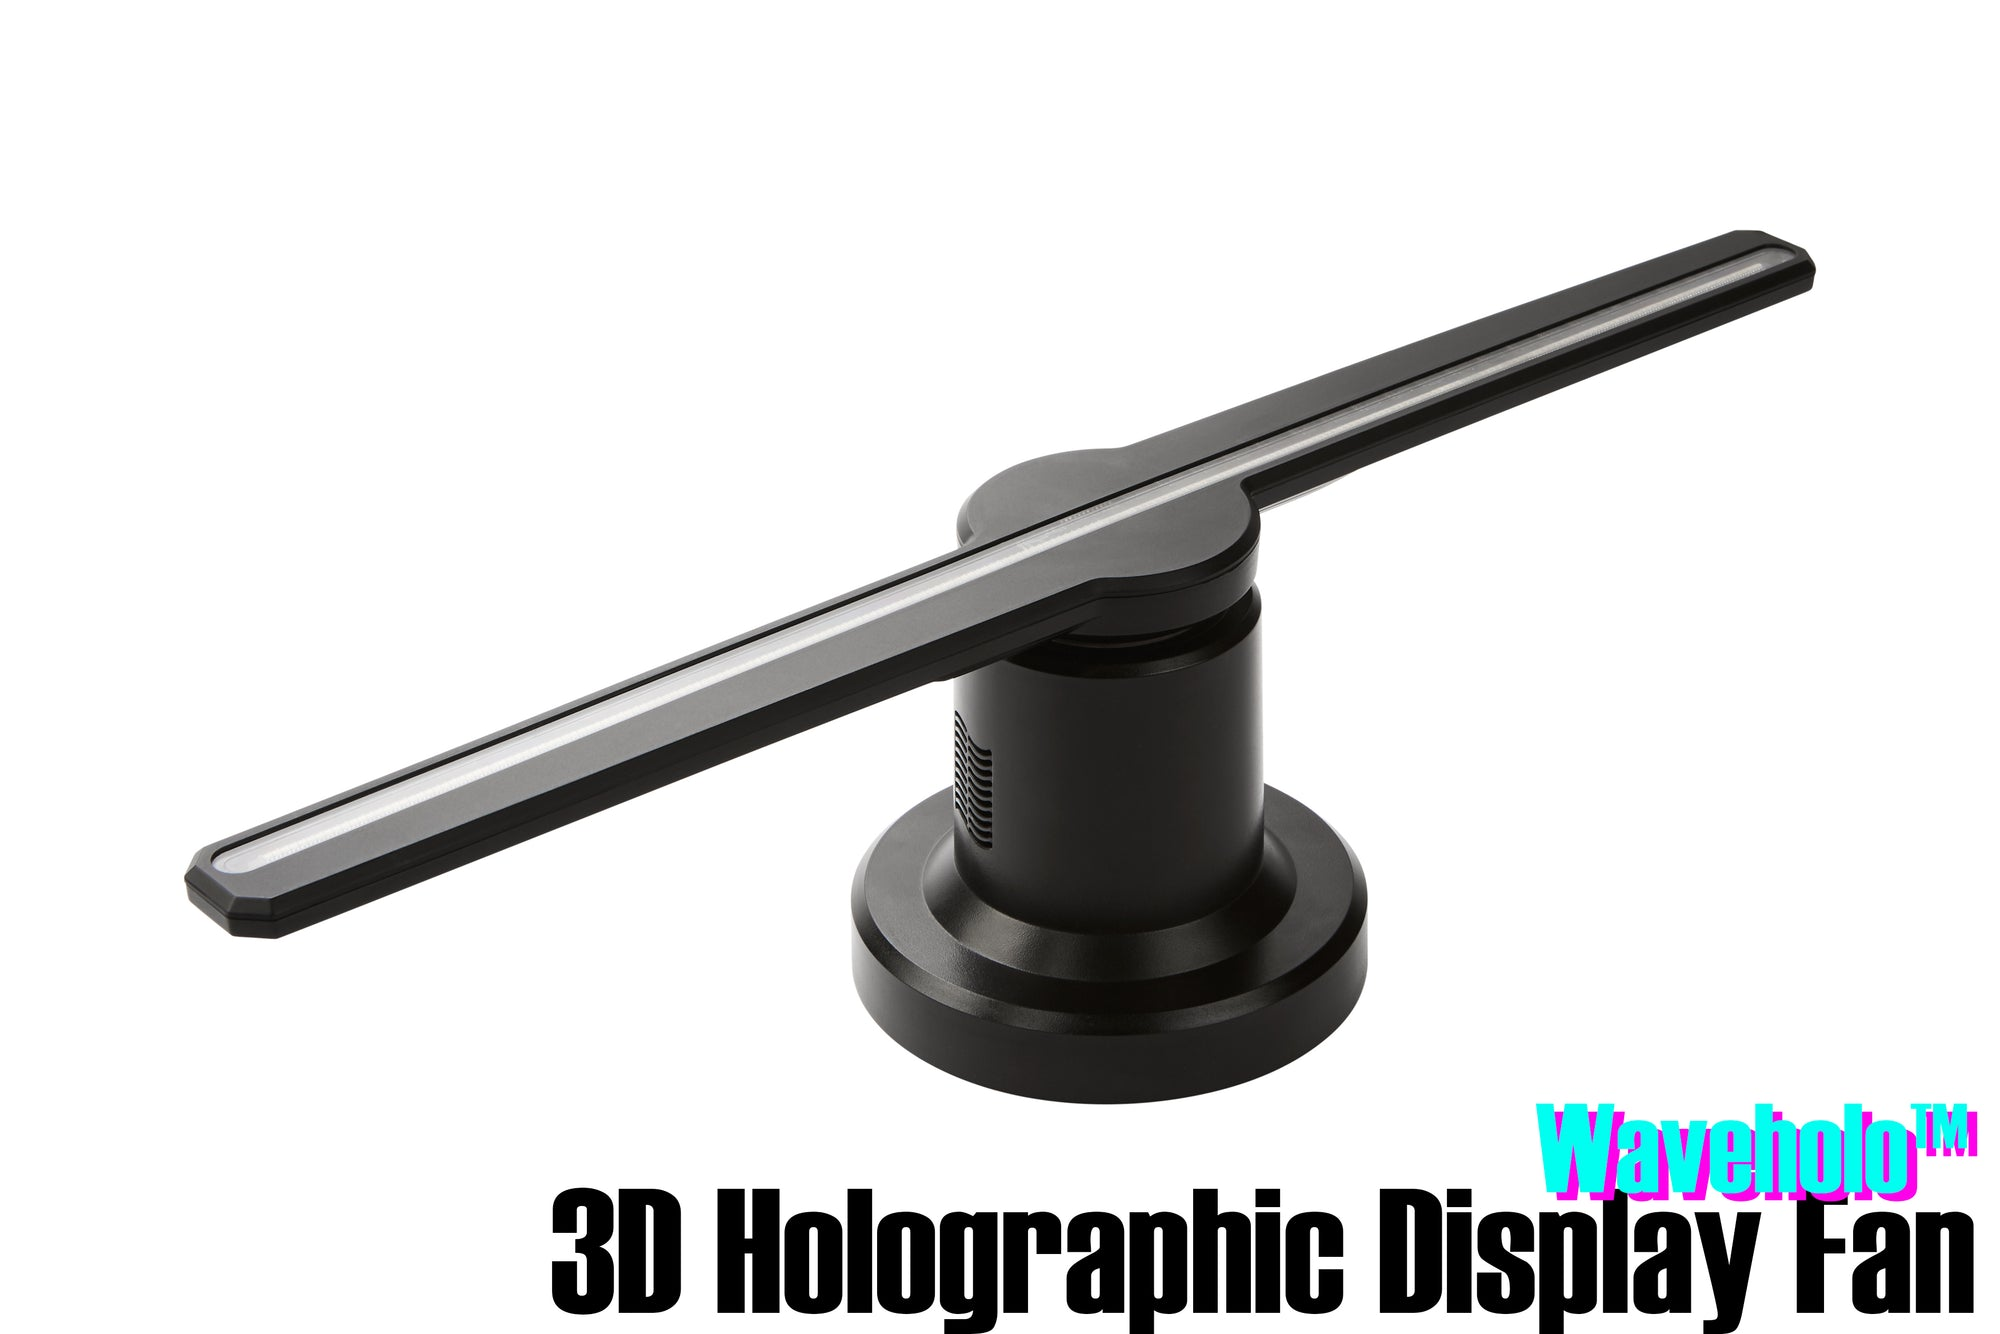 Waveholo™ 3D Holomid Holographic Display Fan